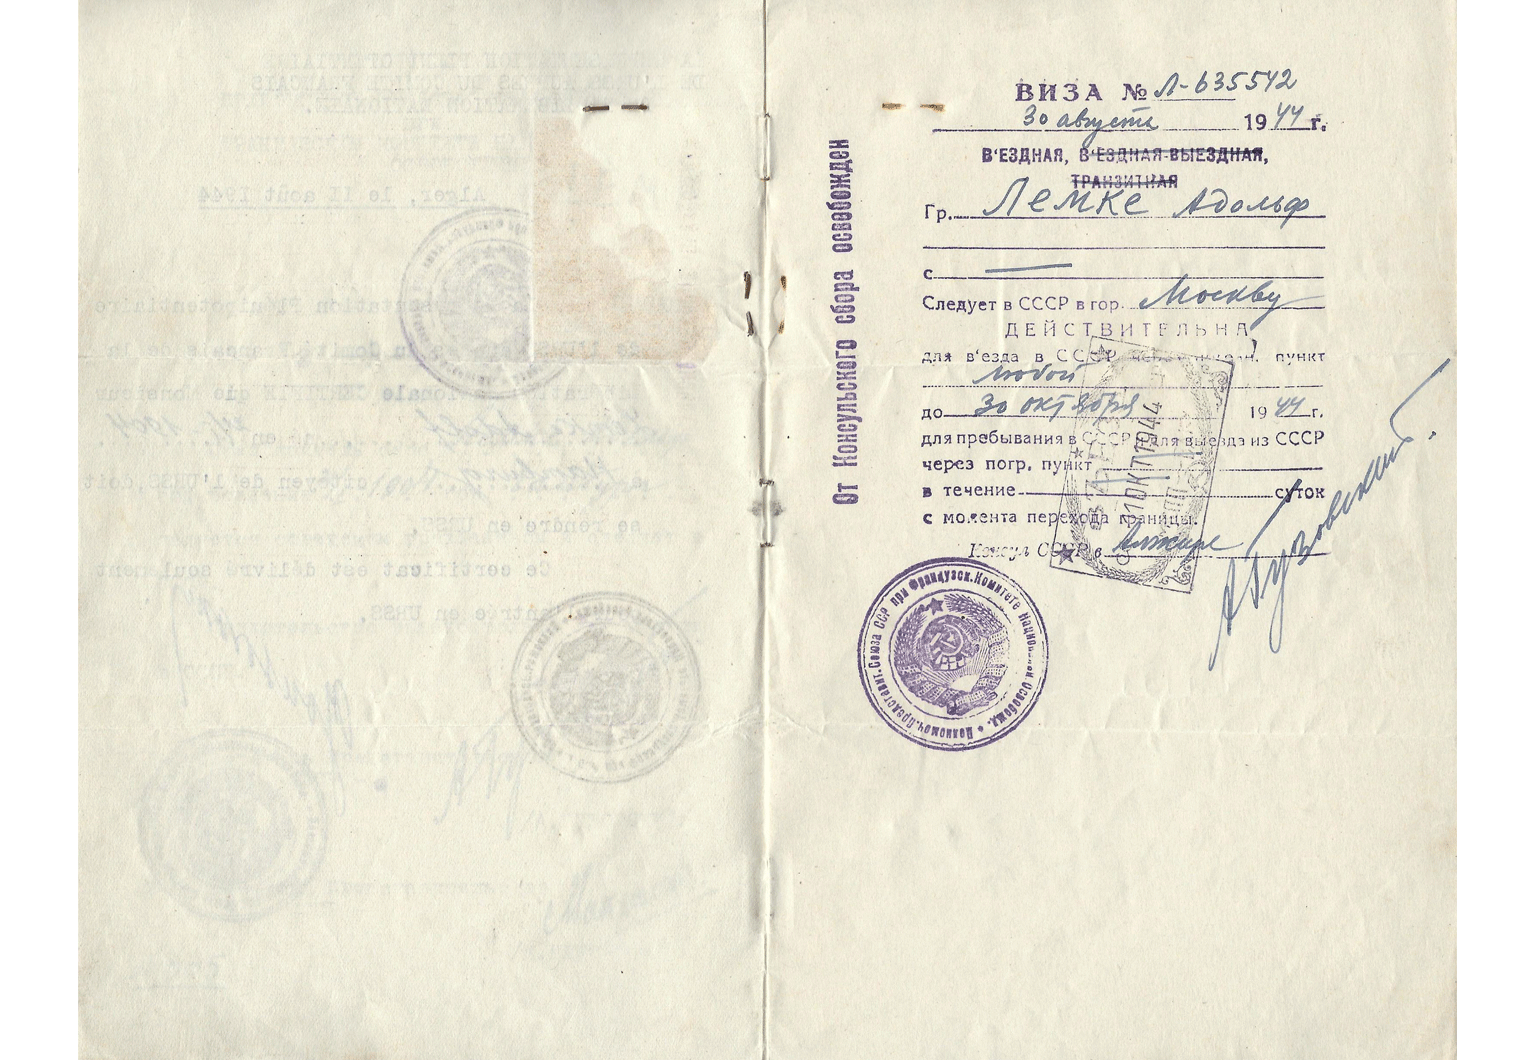 WW2 Soviet travel document